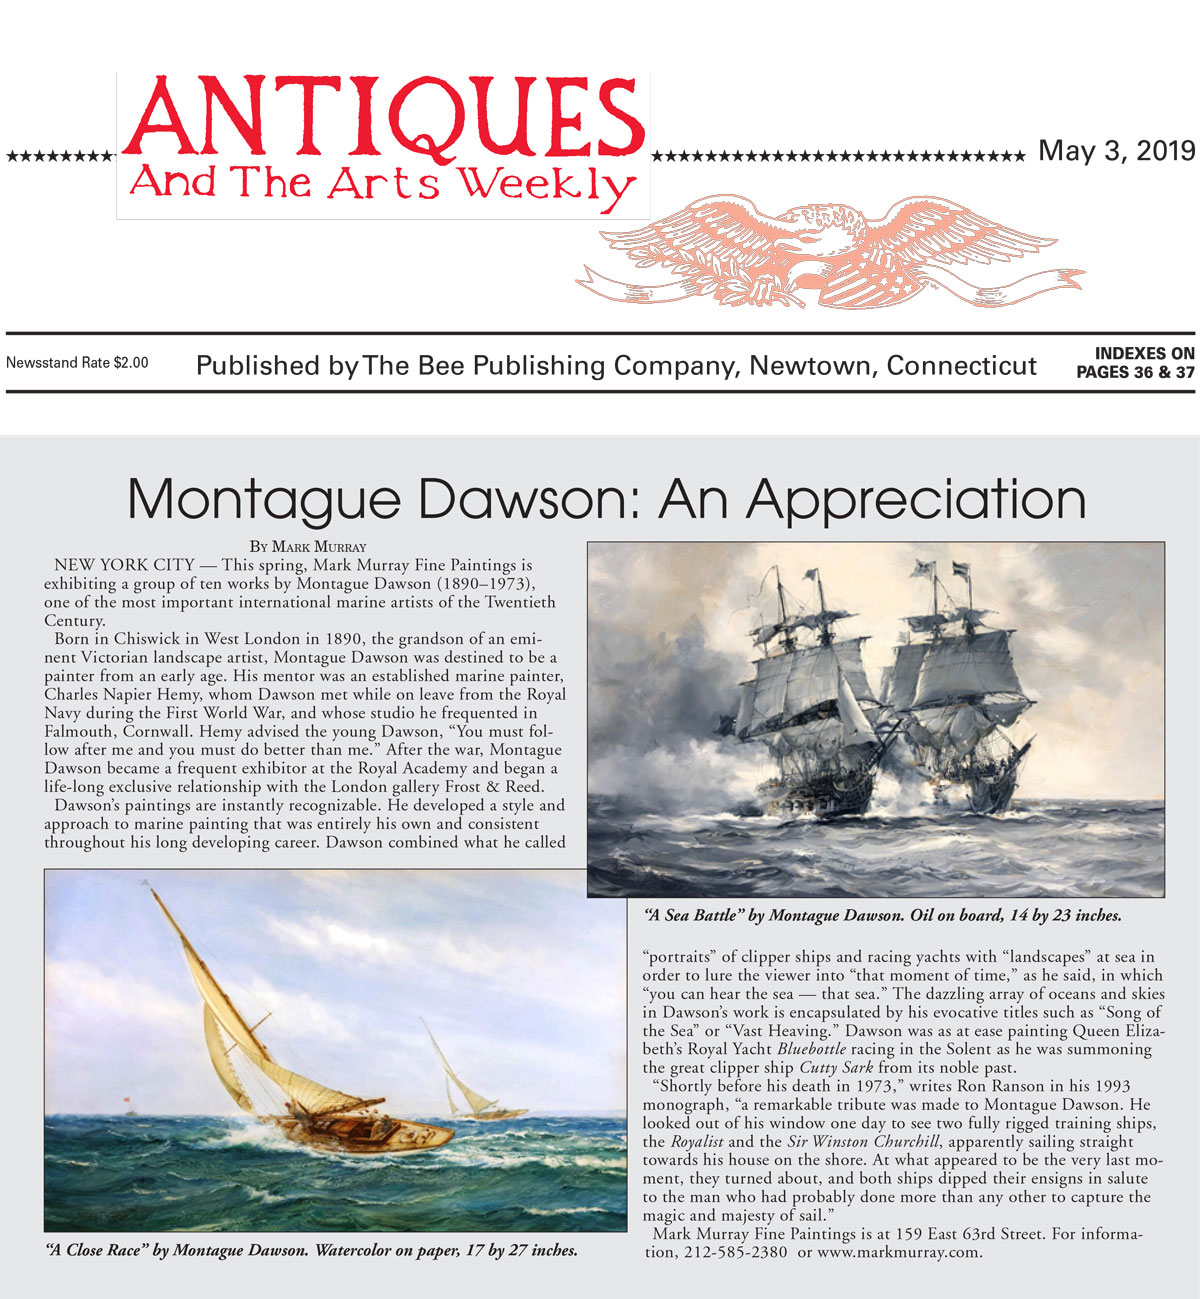 Antiques and Arts Weekly - Montague Dawson